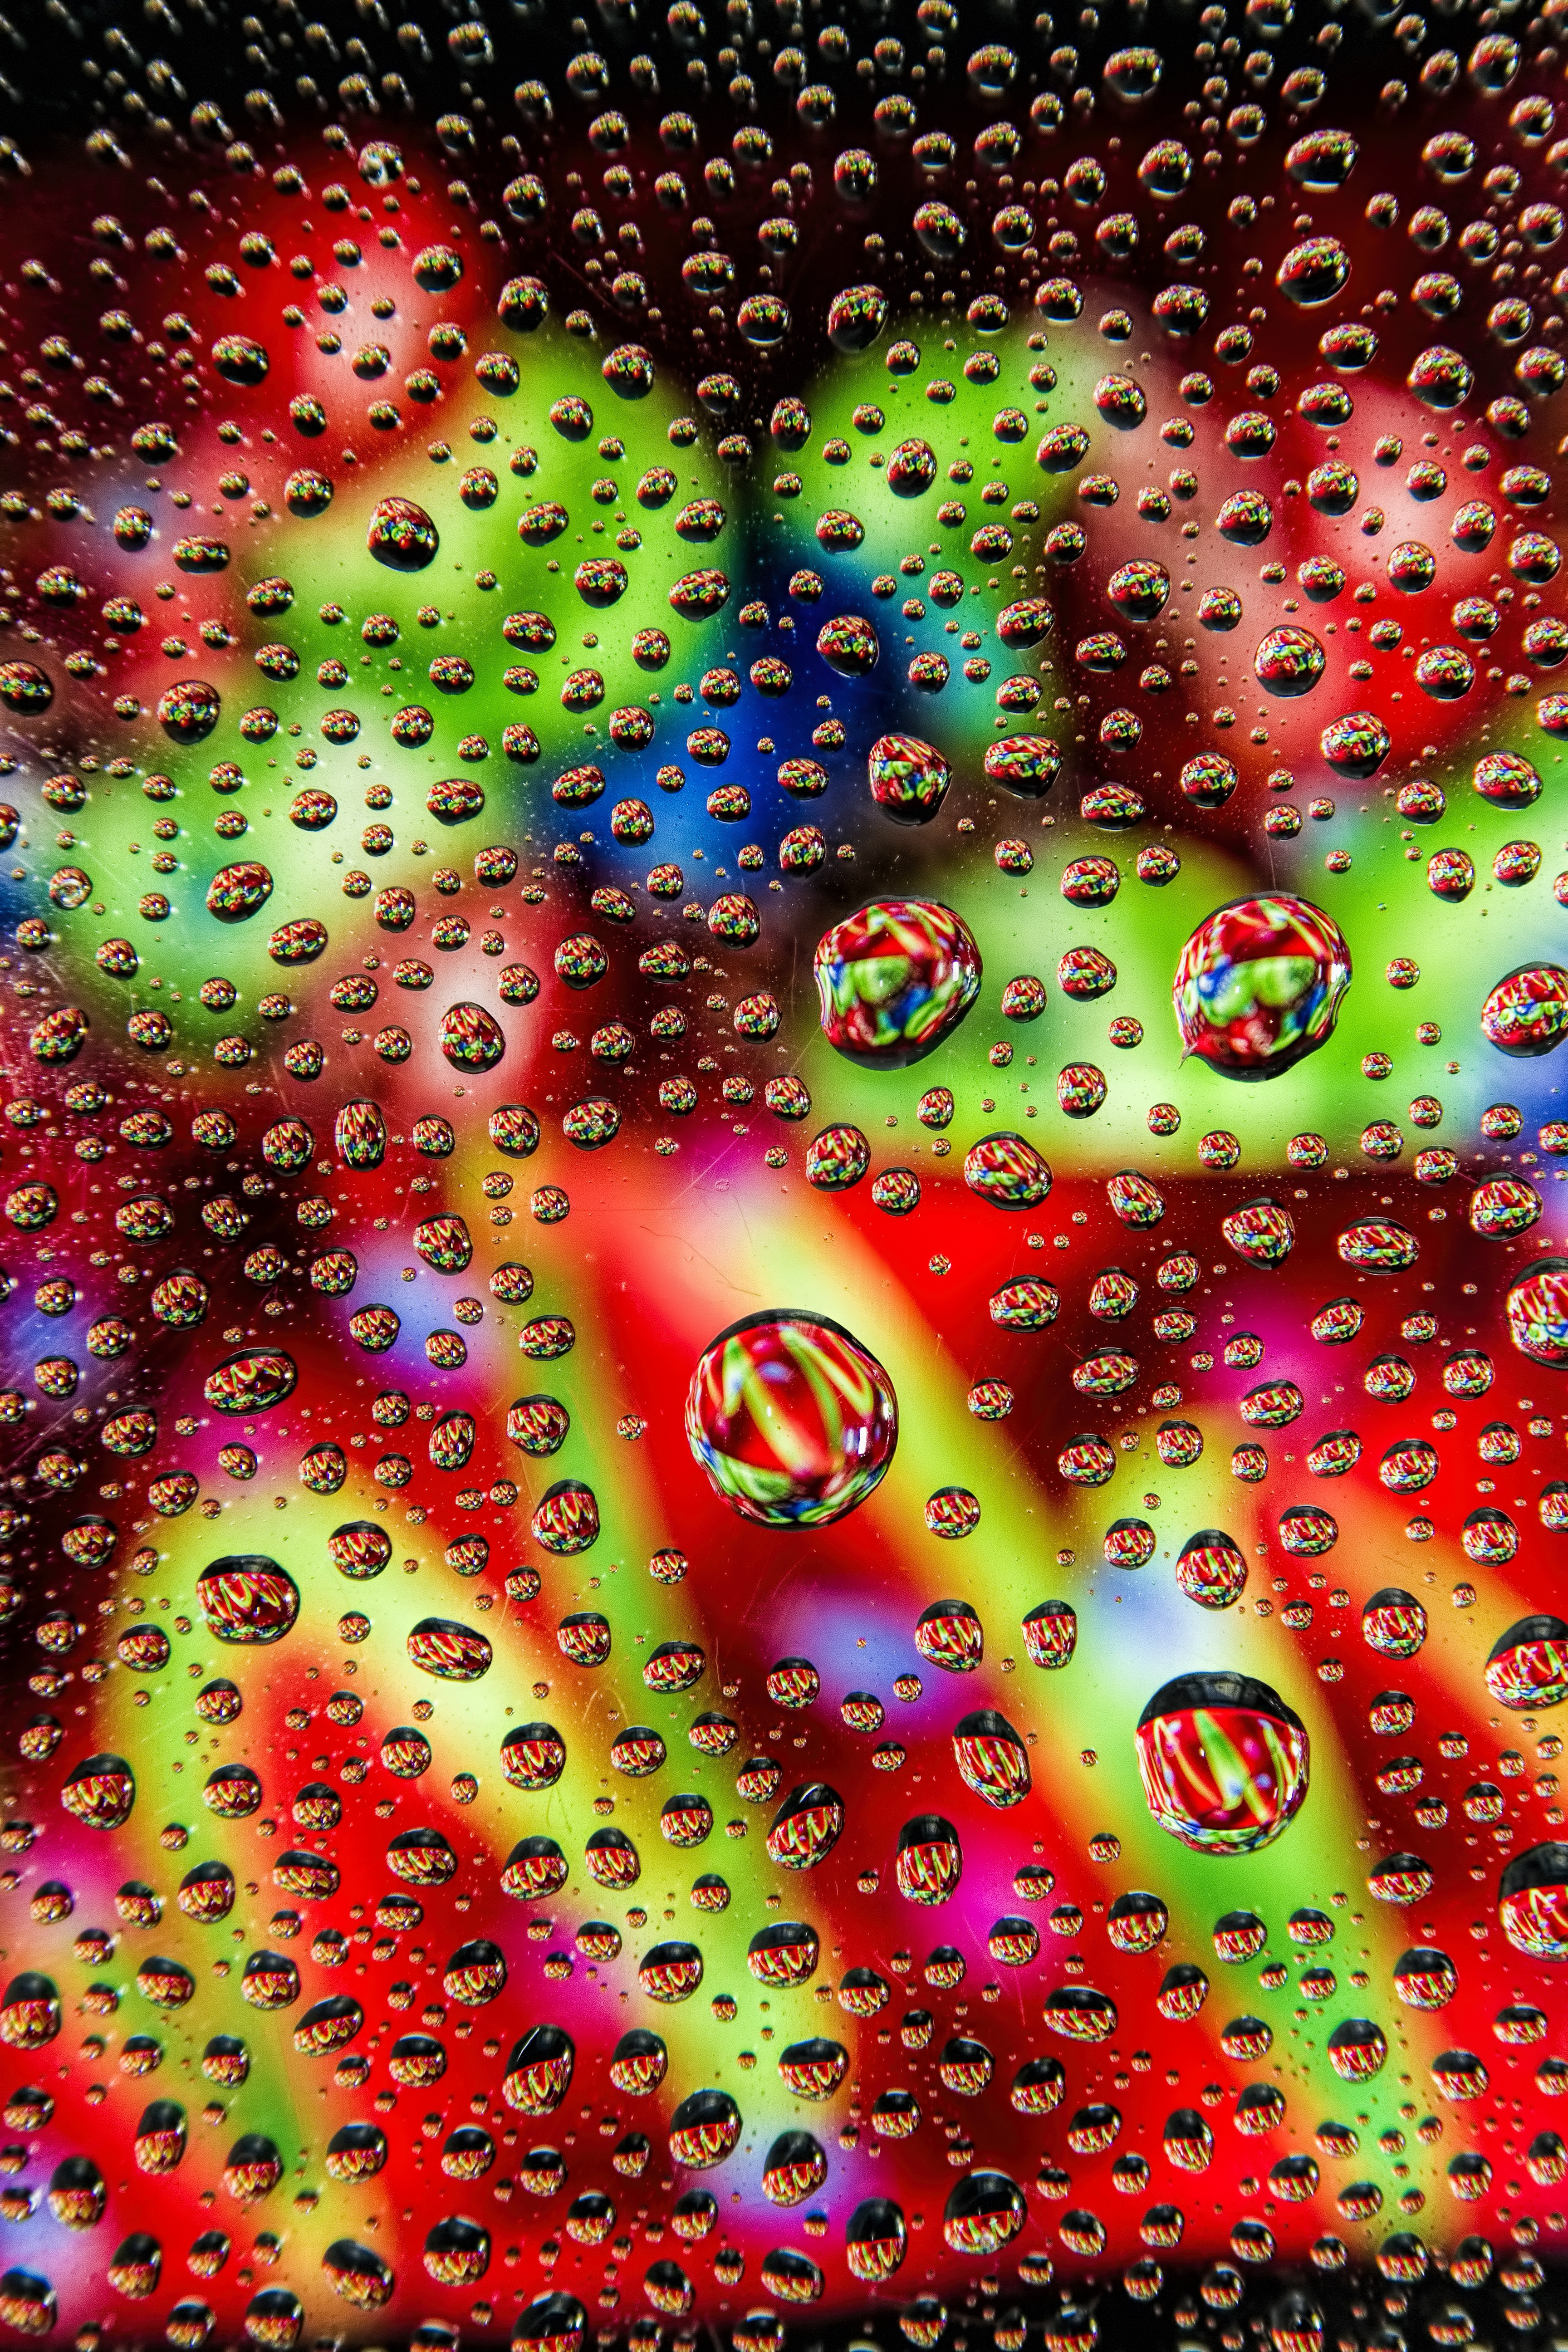 120041 download wallpaper Macro, Drops, Multicolored, Motley, Liquid, Surface, Bubbles screensavers and pictures for free